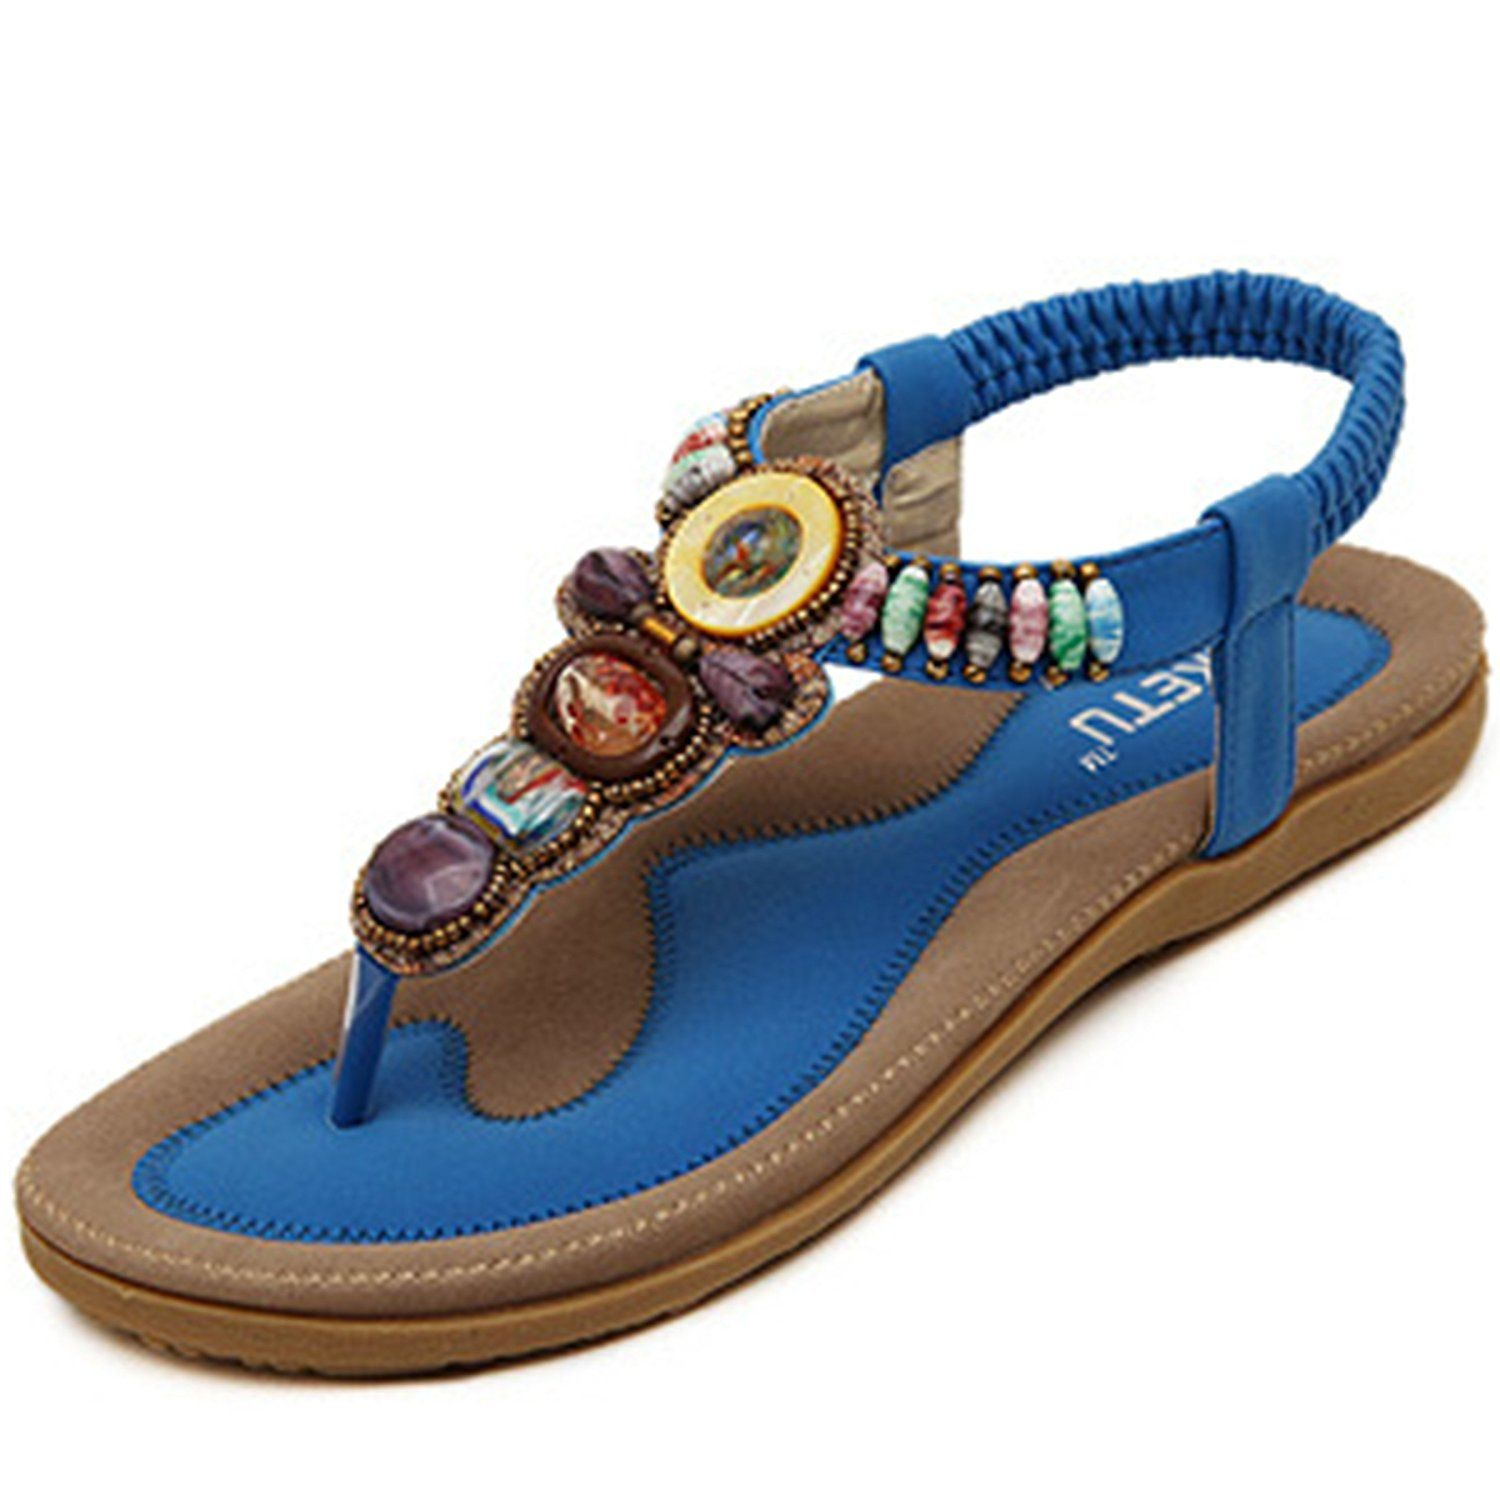 30dd55a499318 PAERLAN Women s Fashion Summer Bohemian Beads Flip Flops Sandals Beach  Shoes -- You can get